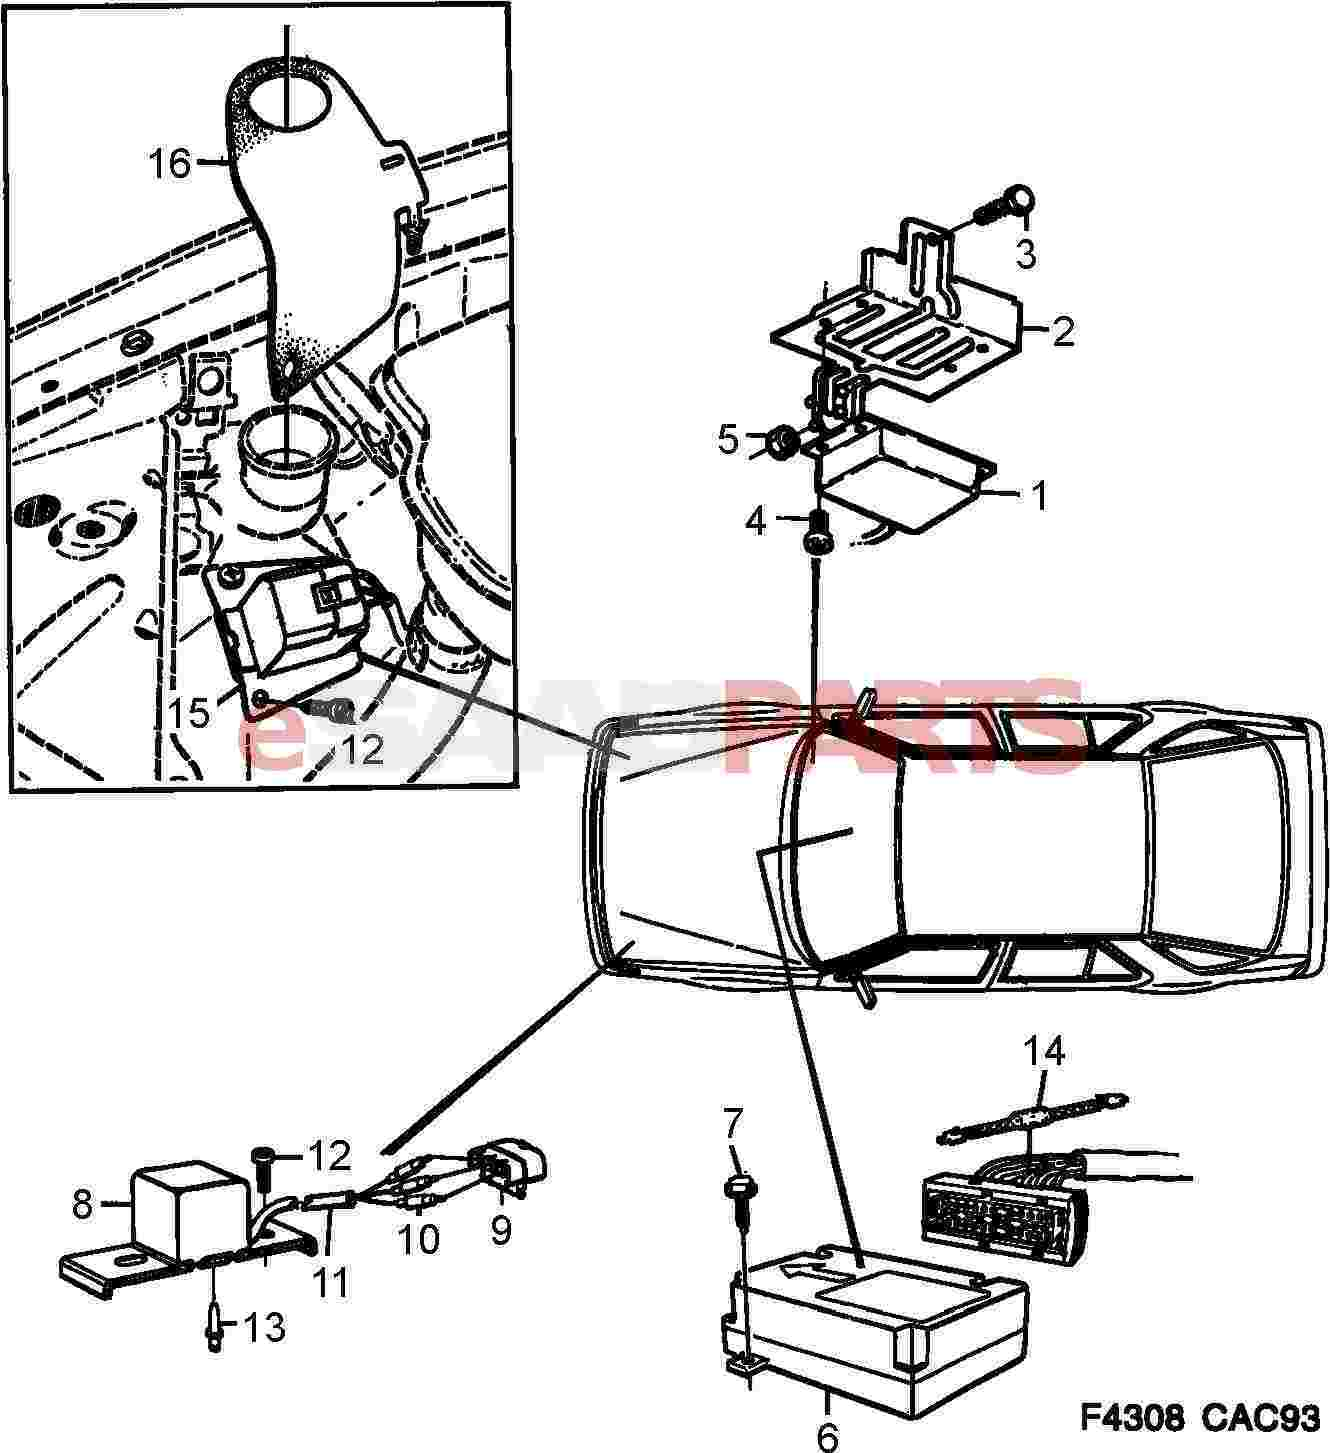 Saab 9000 Ignition Wiring Diagram Saab 9000 Engine Diagram